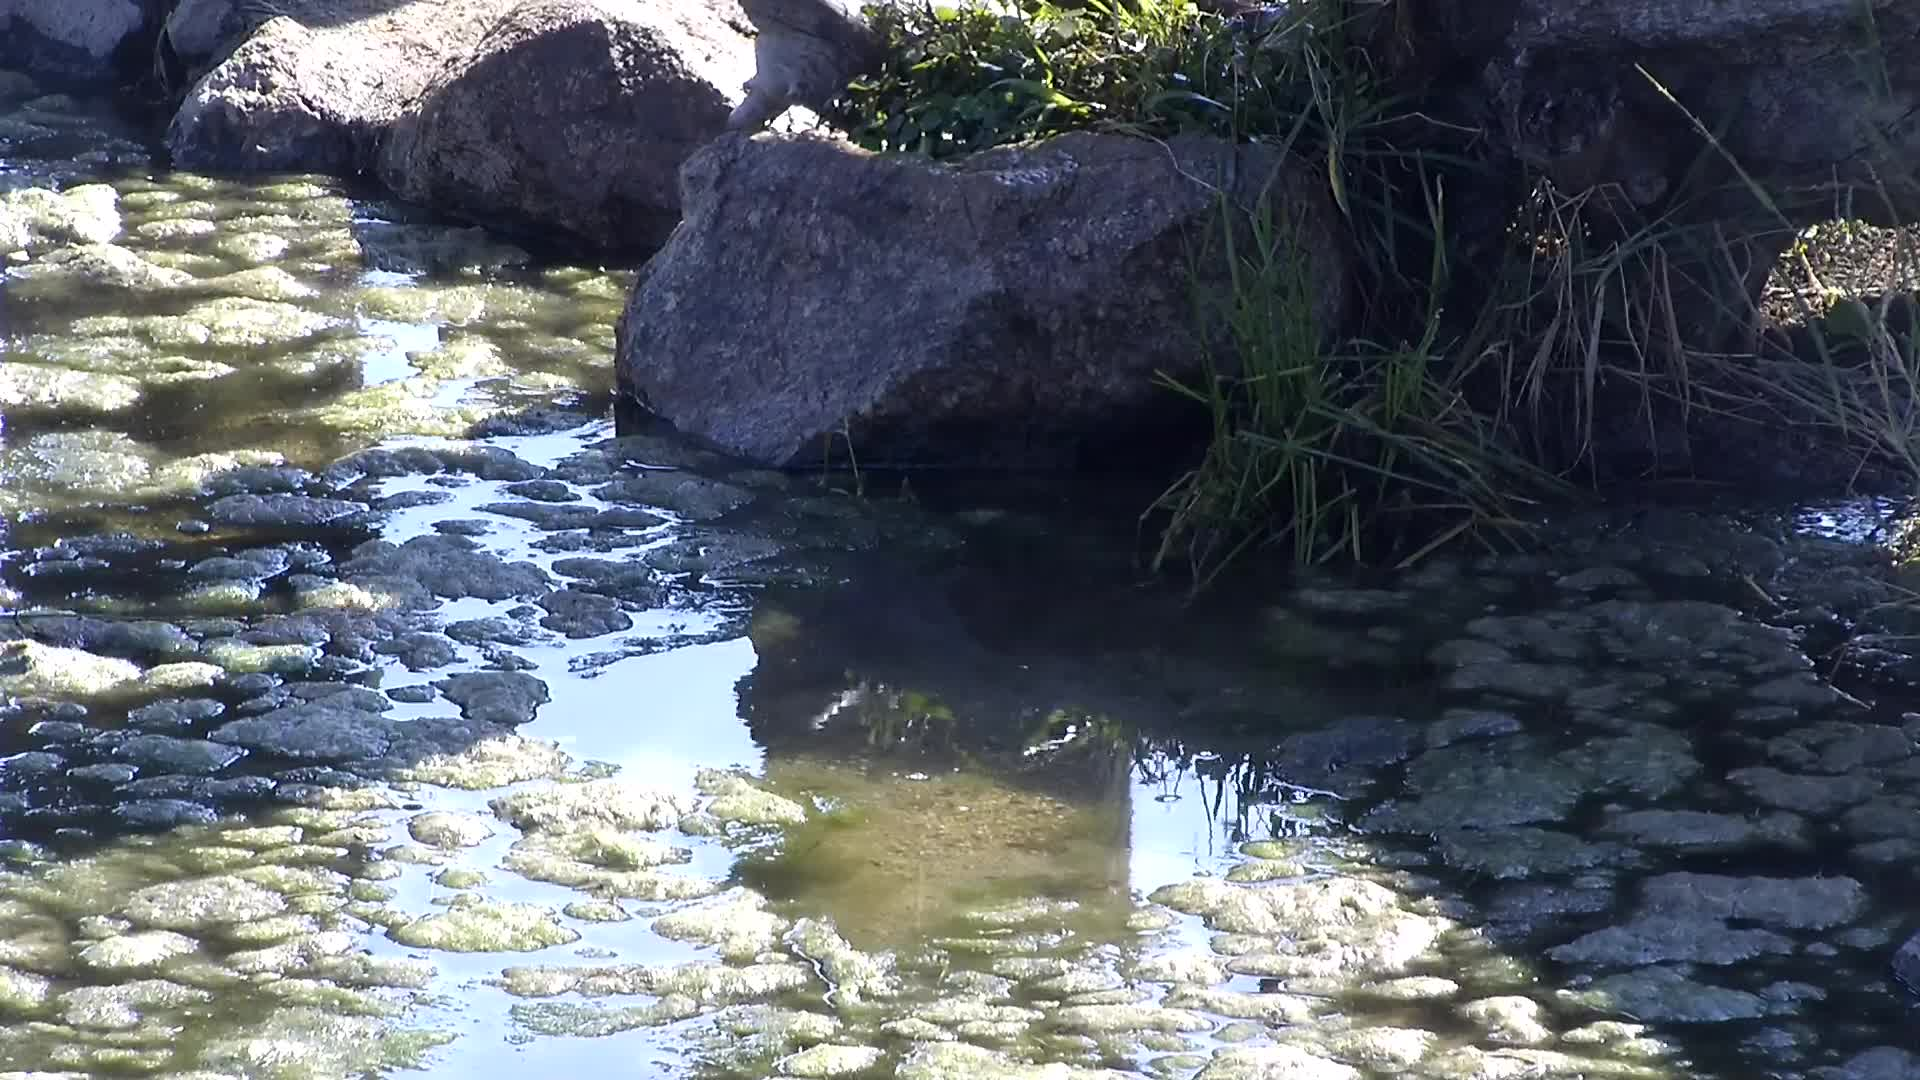 VIDEO: Elephant carefully clears the algae away before drinking